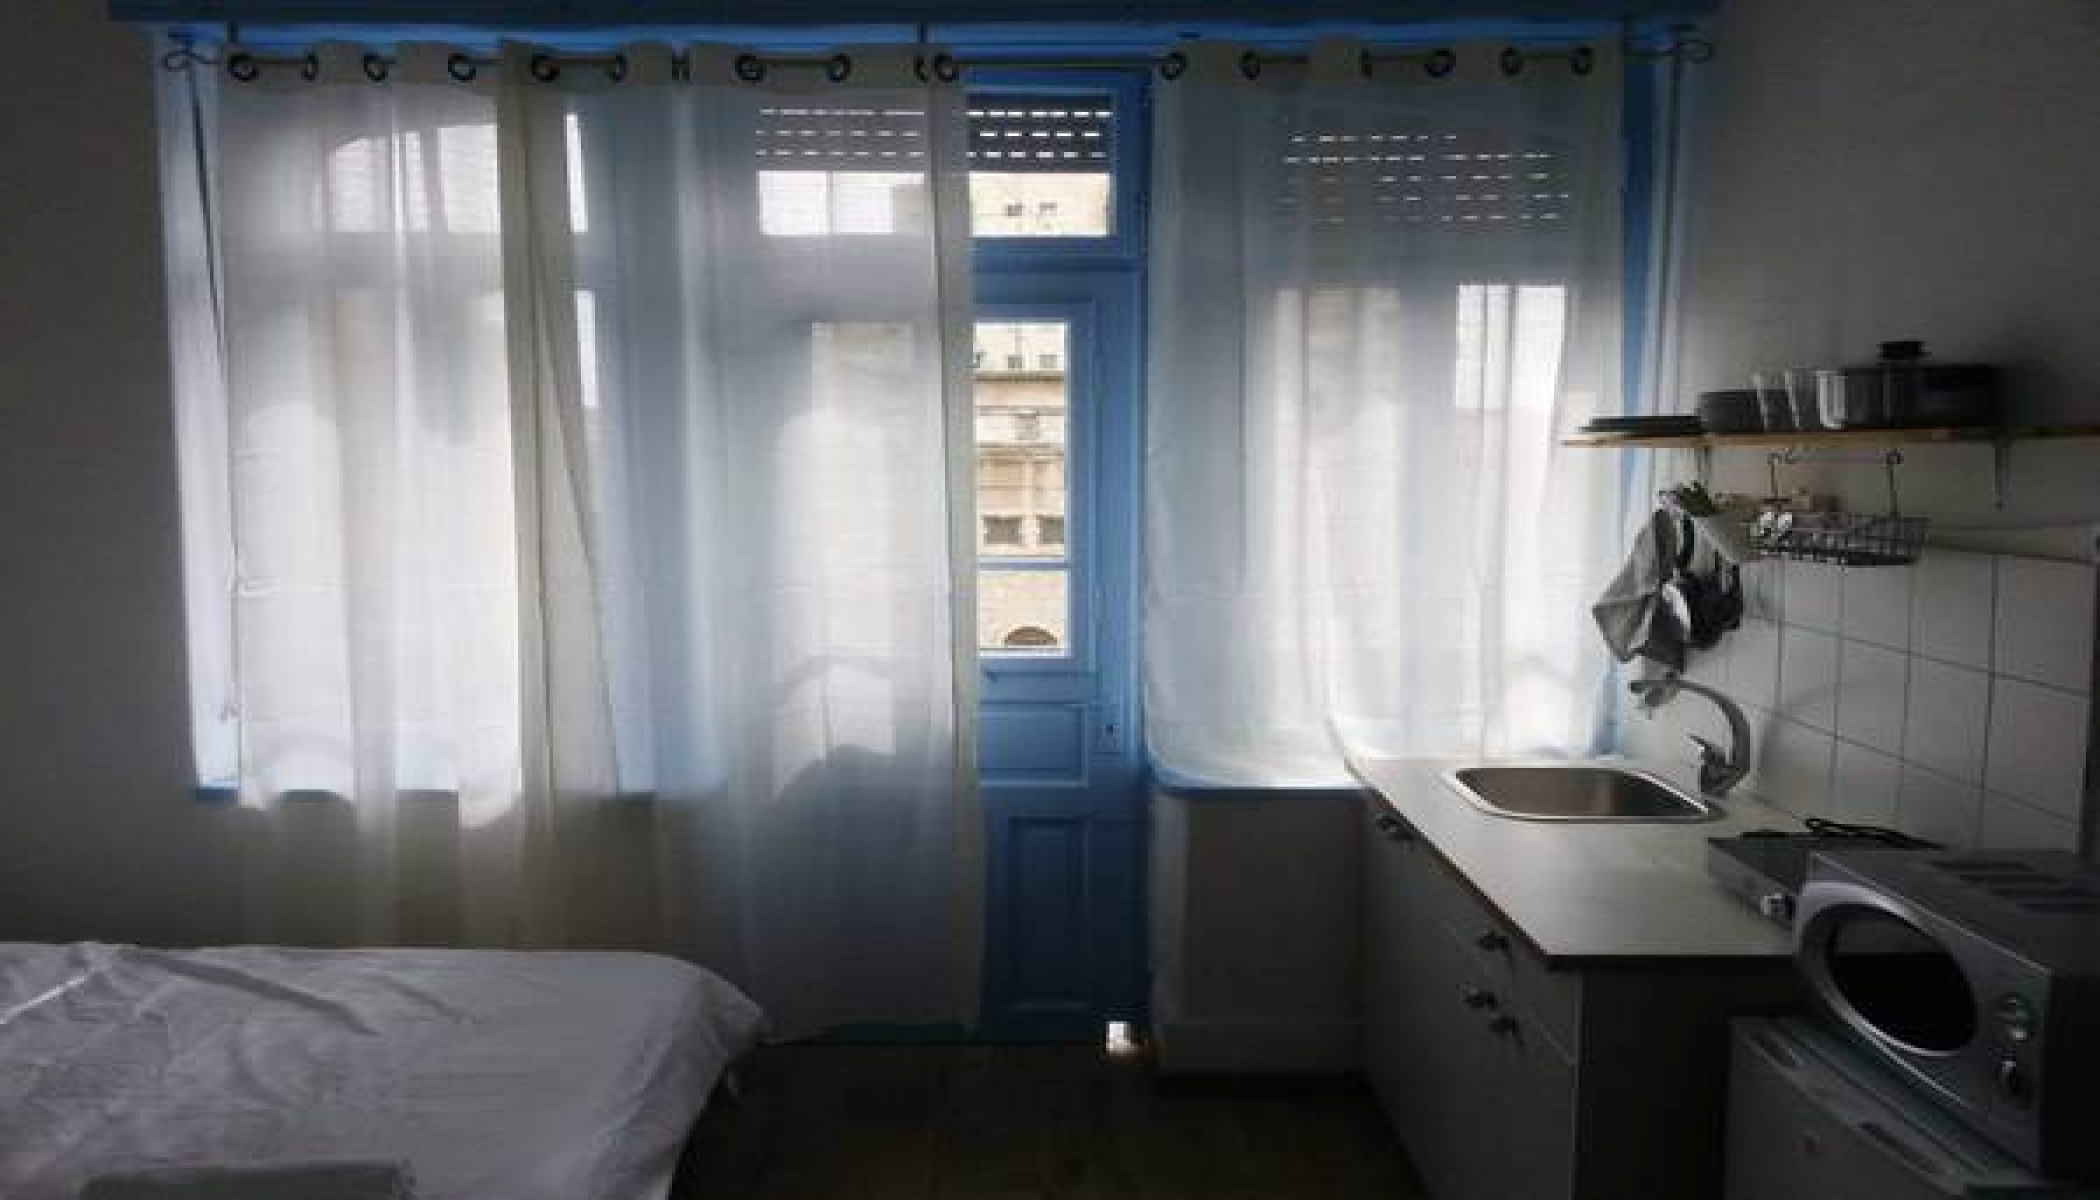 JERUSALEM, 1 Bedroom Bedrooms, 1 Room Rooms,1 BathroomBathrooms,Apartment,VAC JERUSALEM,2,1027